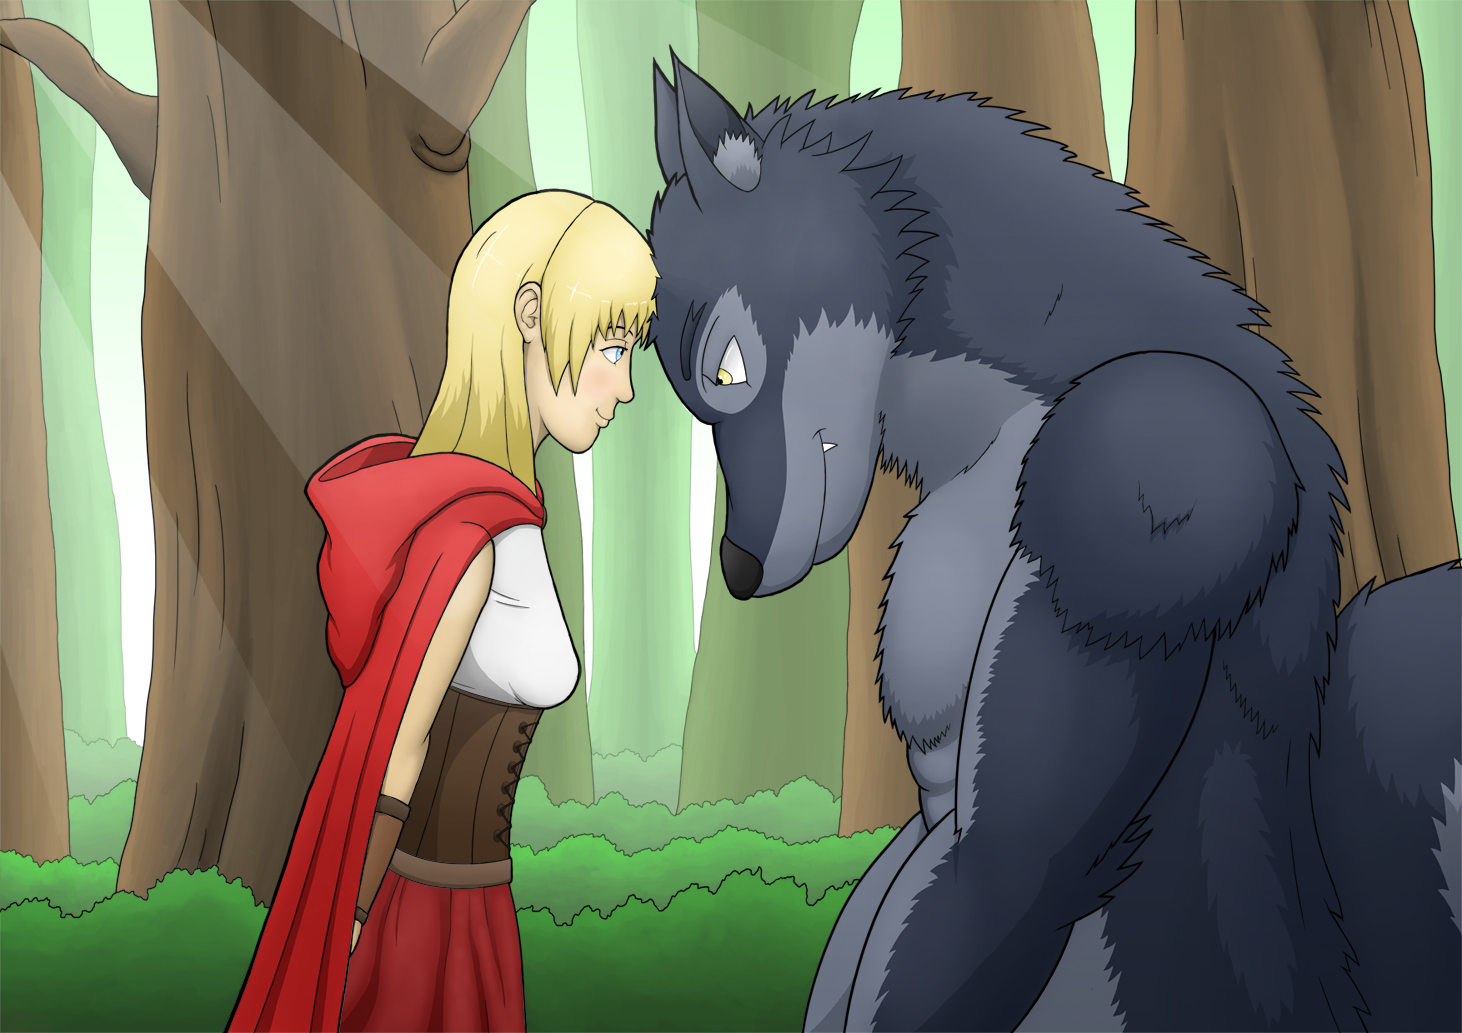 Gallerie à Balong Red_riding_hood_and_mr_wolf_by_grimgor09-d7krcad